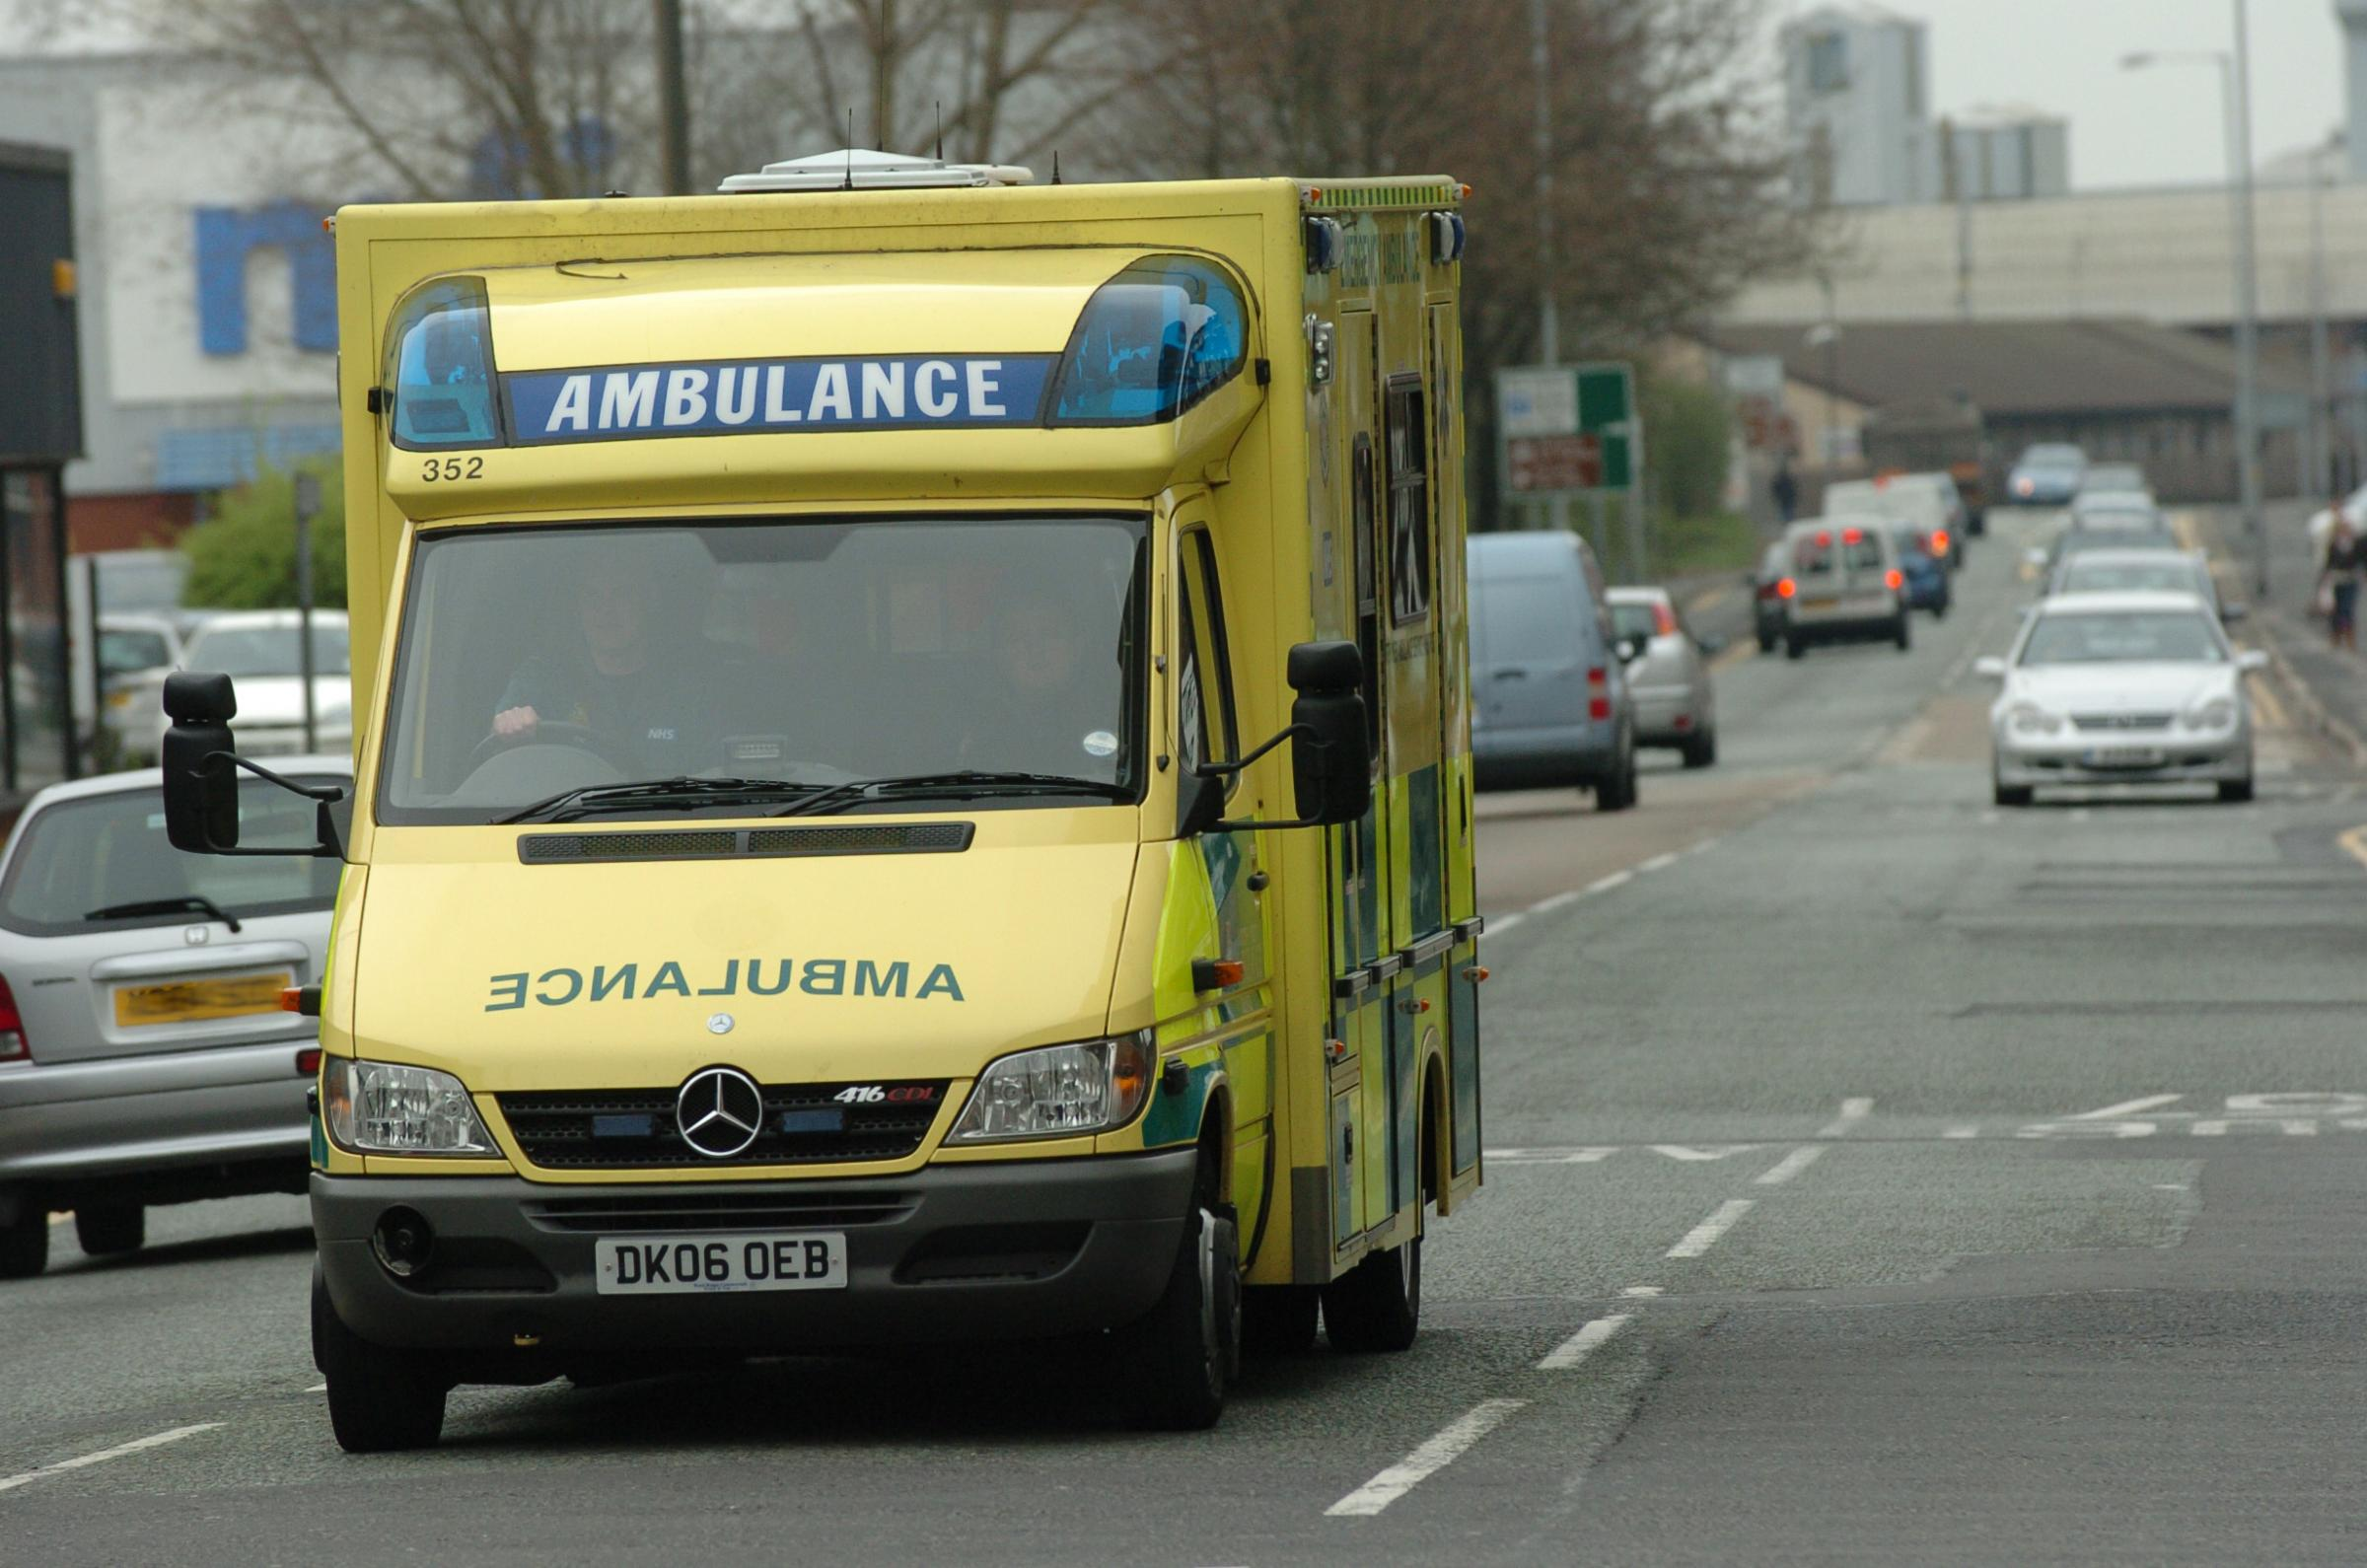 The North West Ambulance Service were called to more than 100 incidents in Warrington on New Year's Eve.